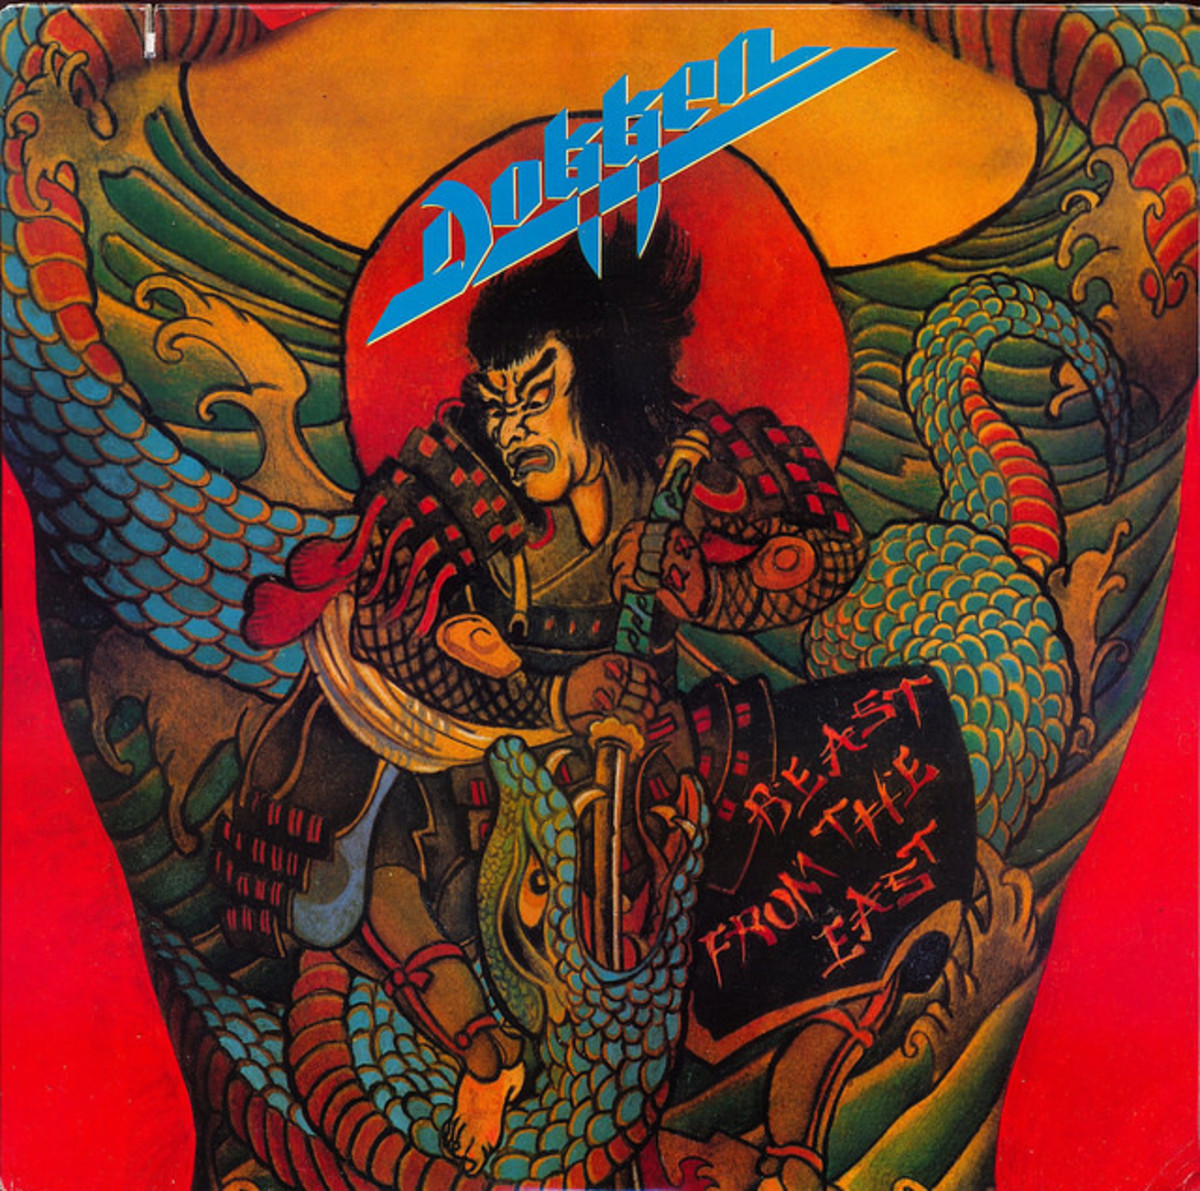 "Dokken ""Beast From The East"" Elektra 60823-1 12"" Vinyl Record (1988) US Pressing"